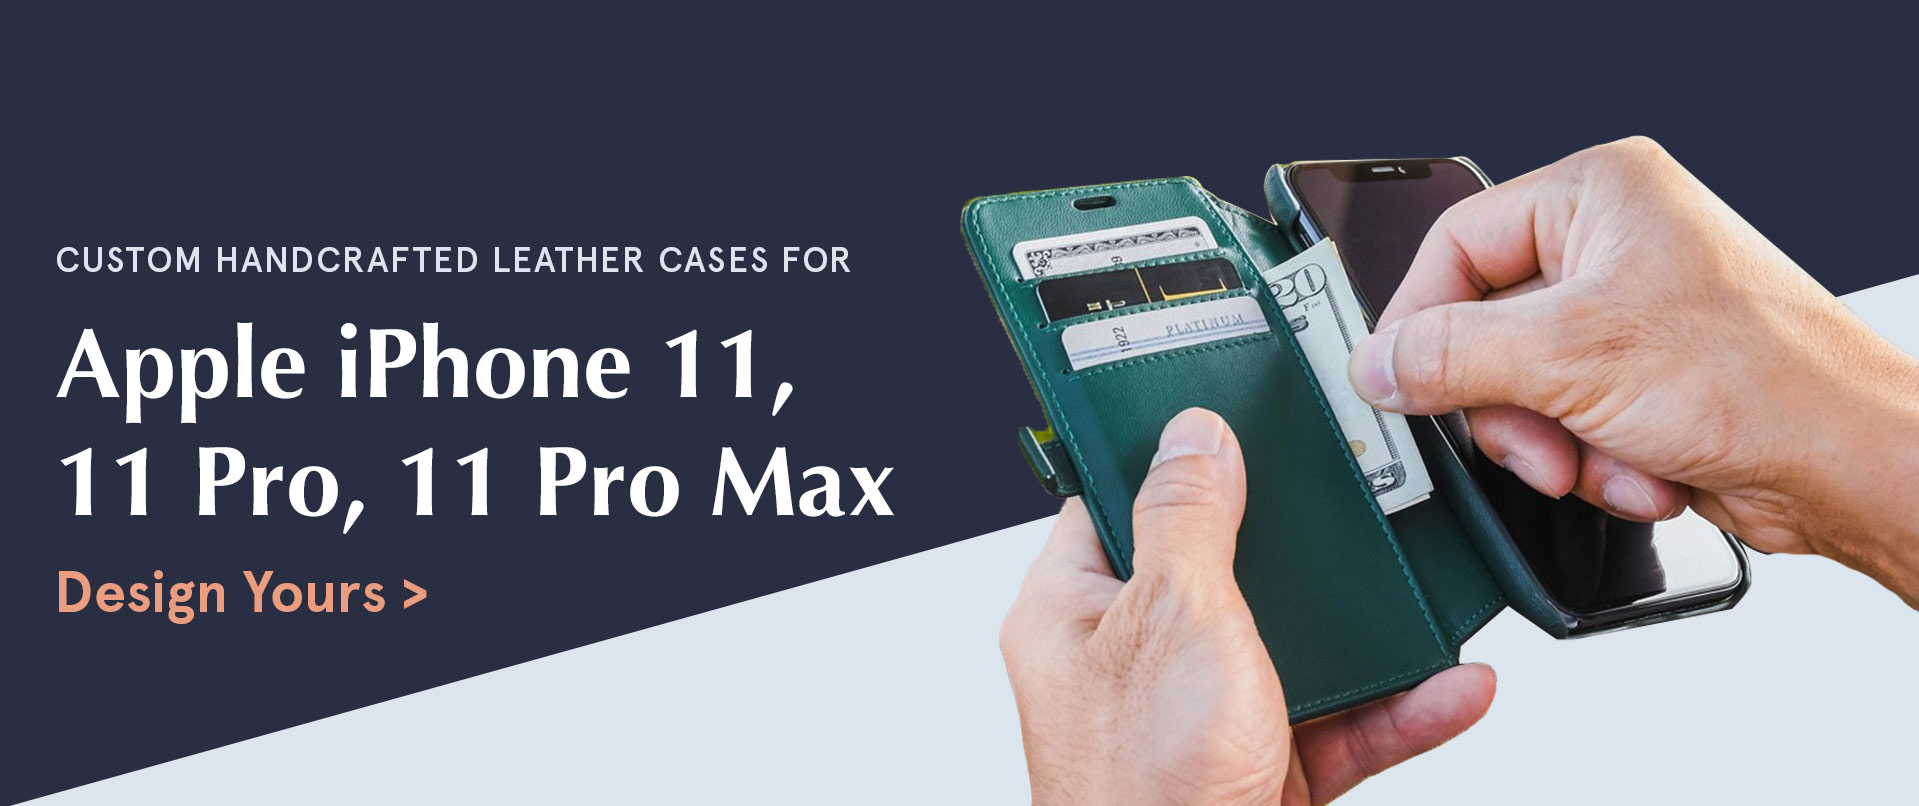 Custom handcrafted leather cases for Apple iPhone 11, 11 Pro, 11 Pro Max